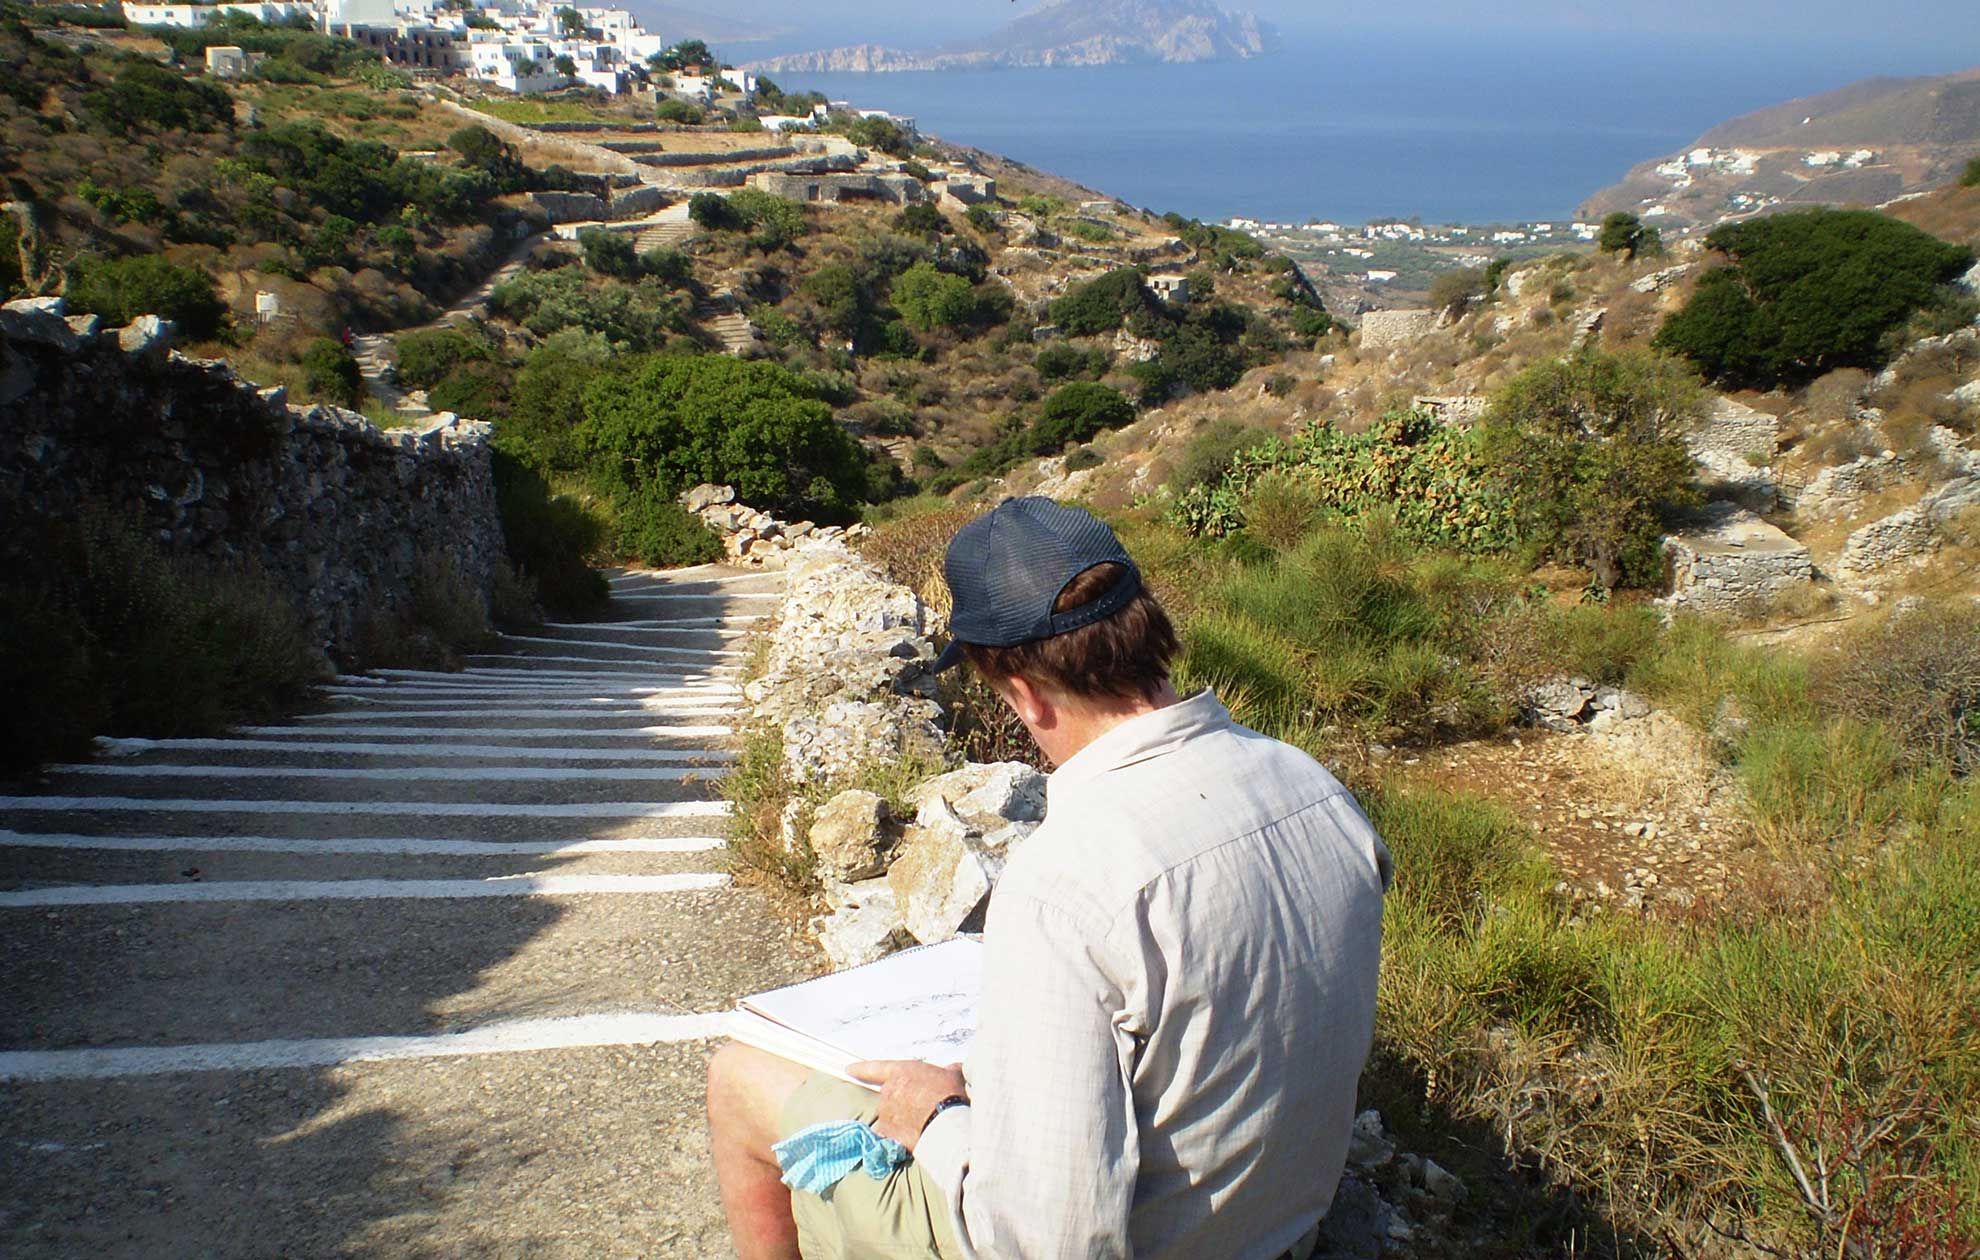 Painting in Amorgos